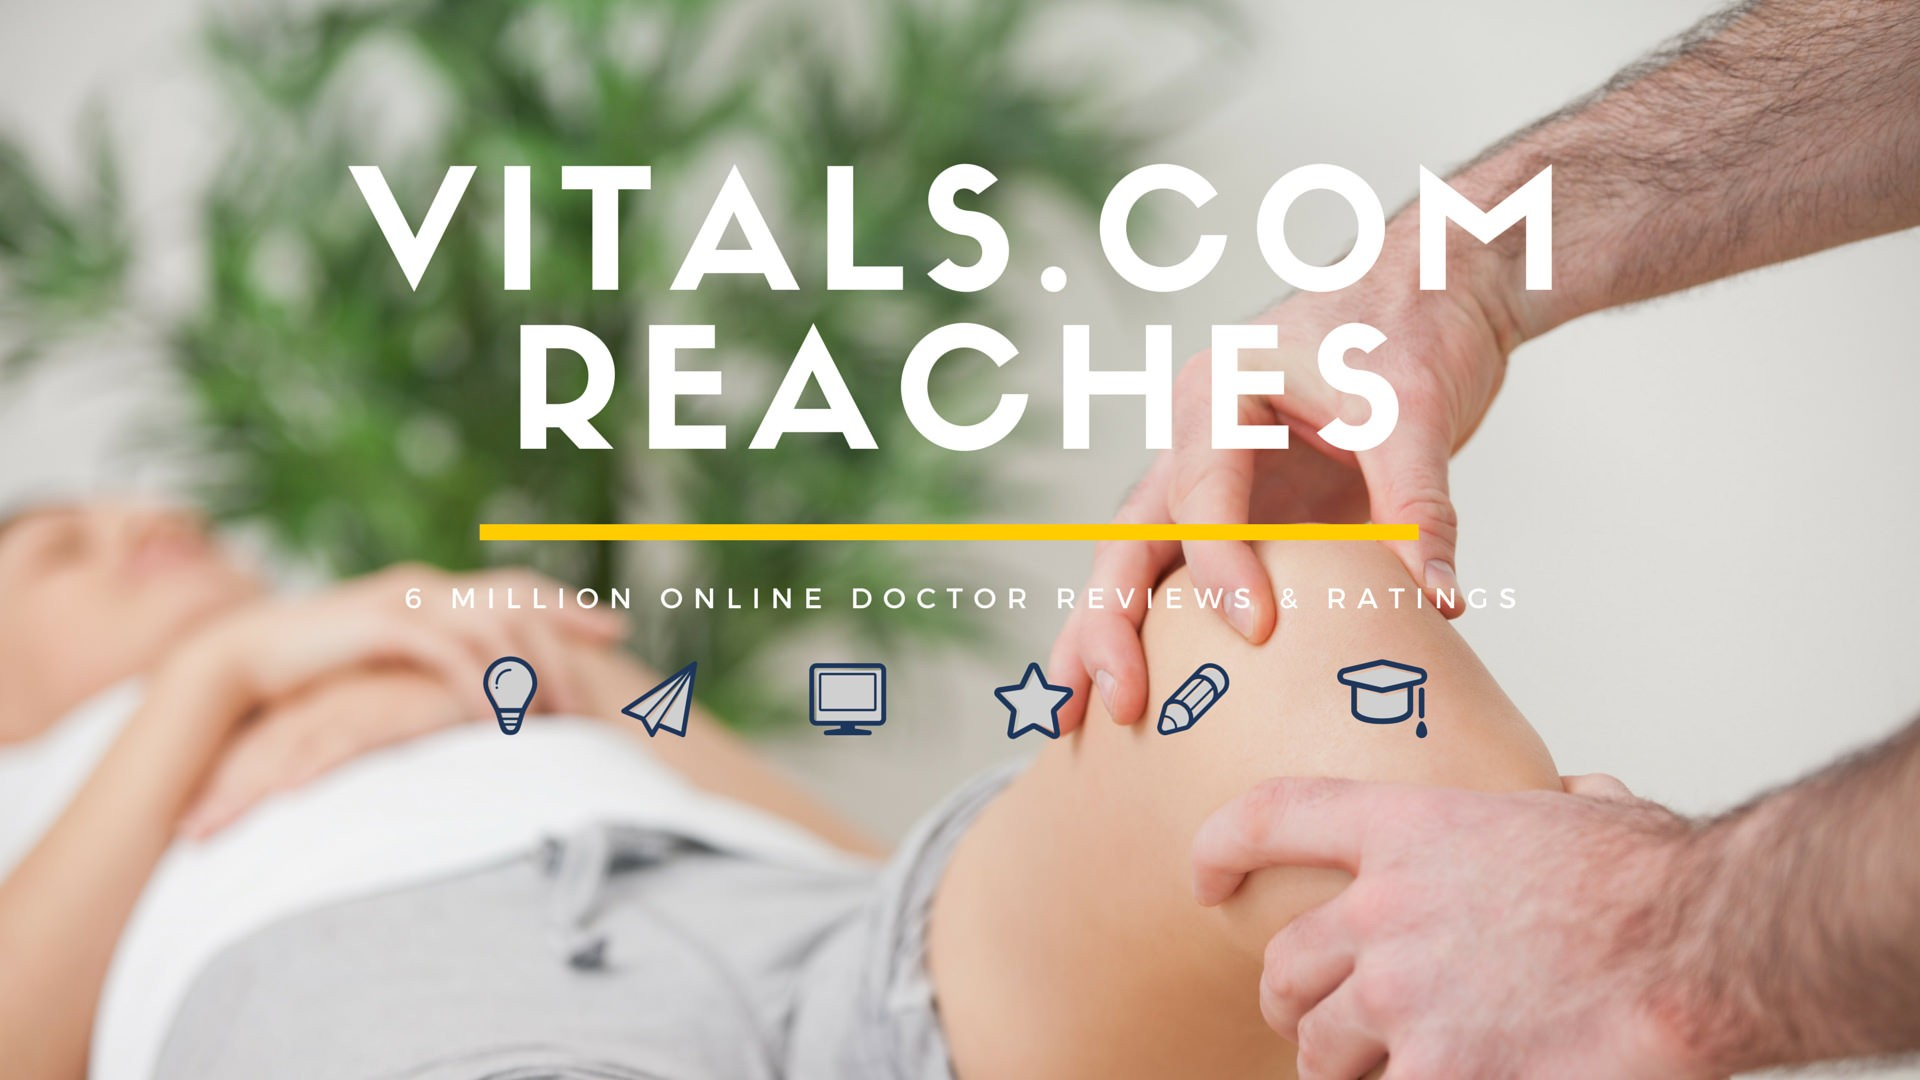 Infographic: Vitals.com reaches 6 Million Online Doctor Reviews & Ratings